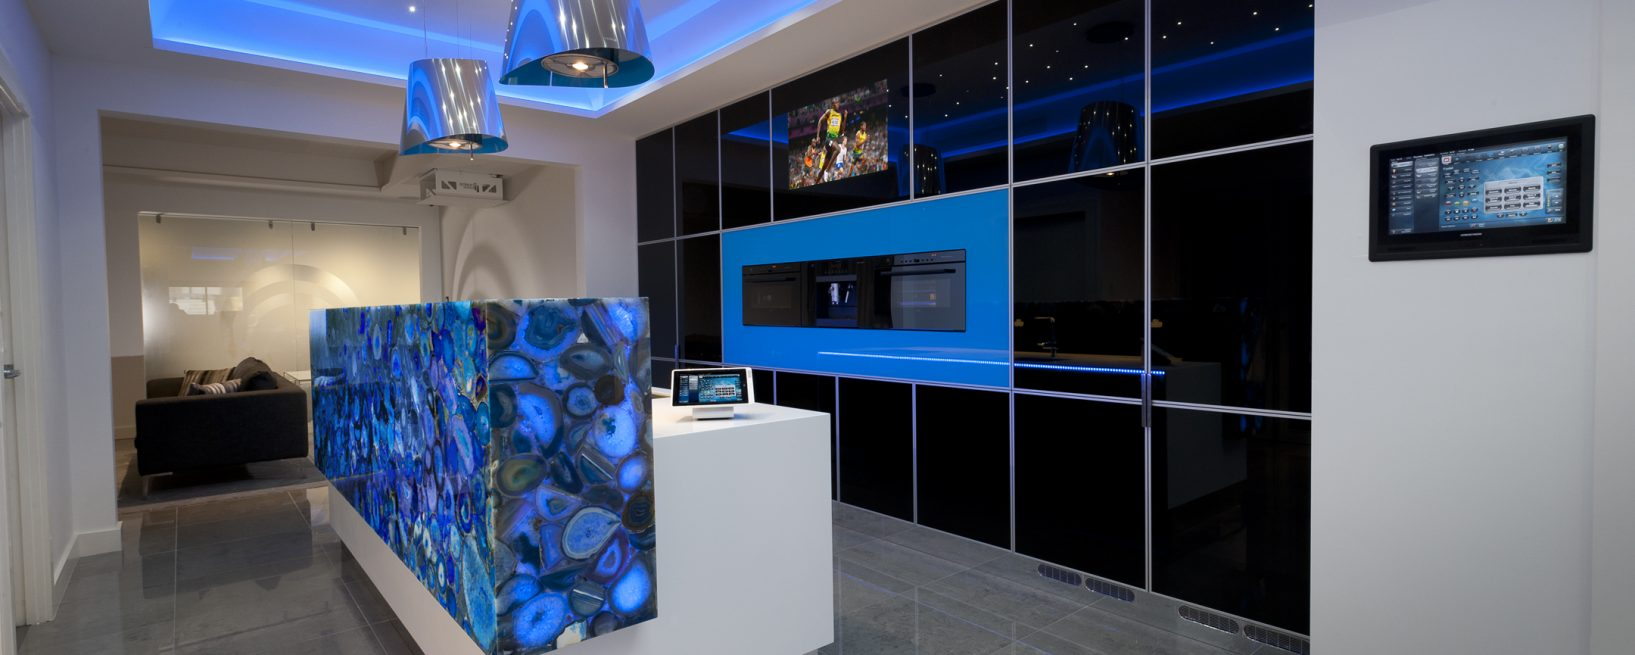 Luxury Kitchen Design Brisbane Australia